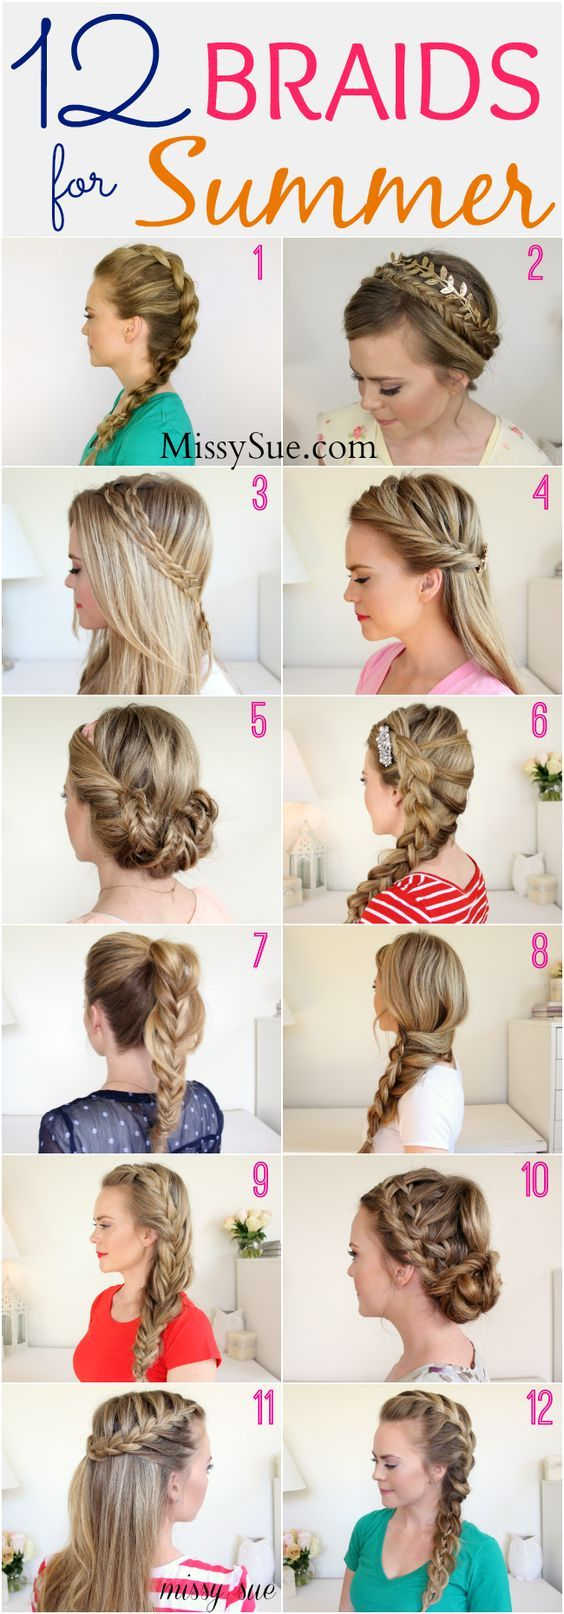 Cute easy hairstyles that kids can do - 12 Braids For Summer Beat The Heat And Look Cute With These Braided Hairstyles